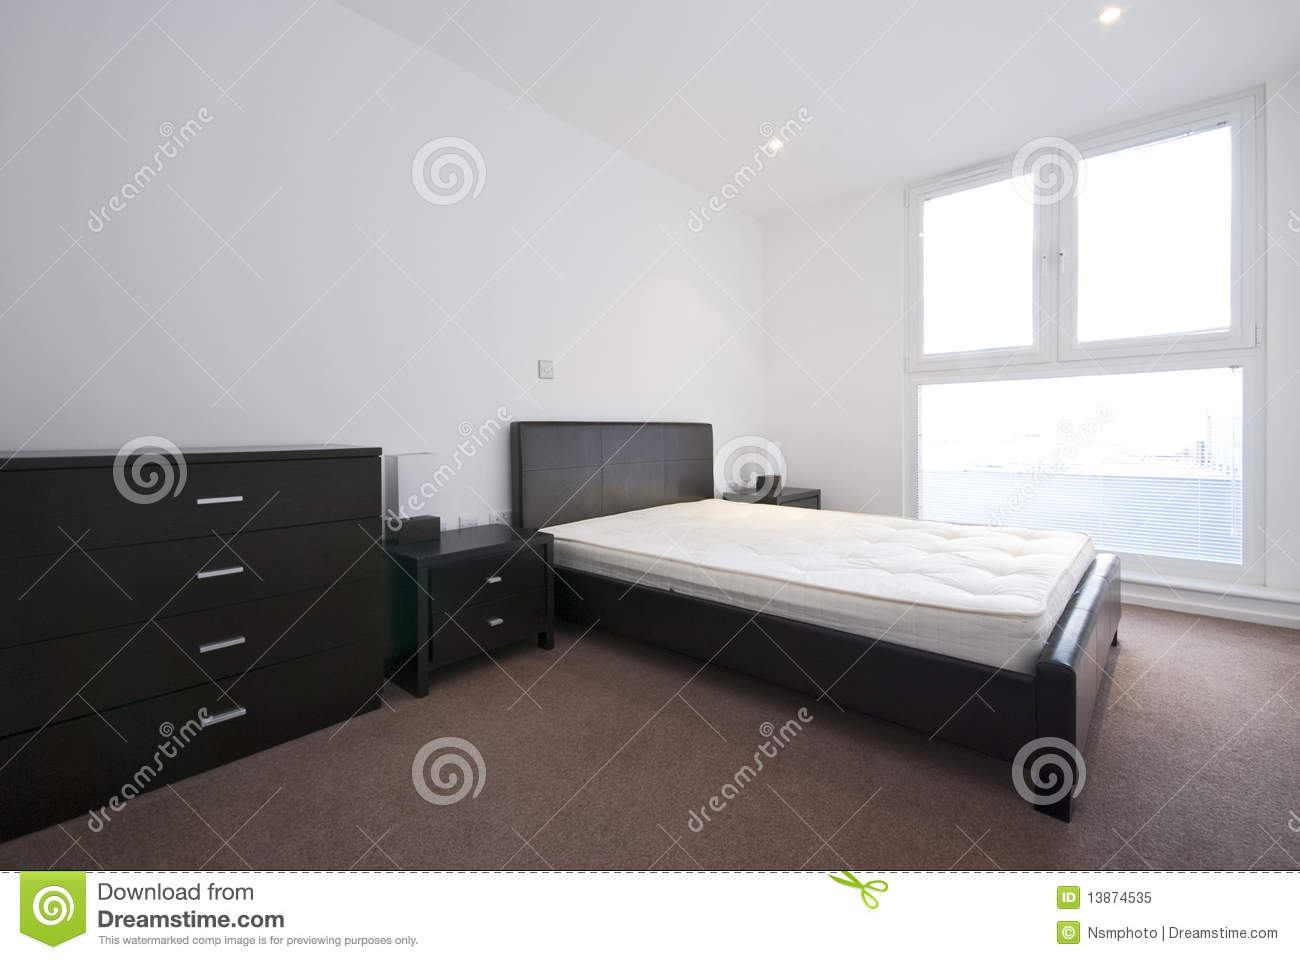 Double chambre coucher moderne avec le grand double b ti photo libre de droits image 13874535 for Photo de chambre a coucher moderne